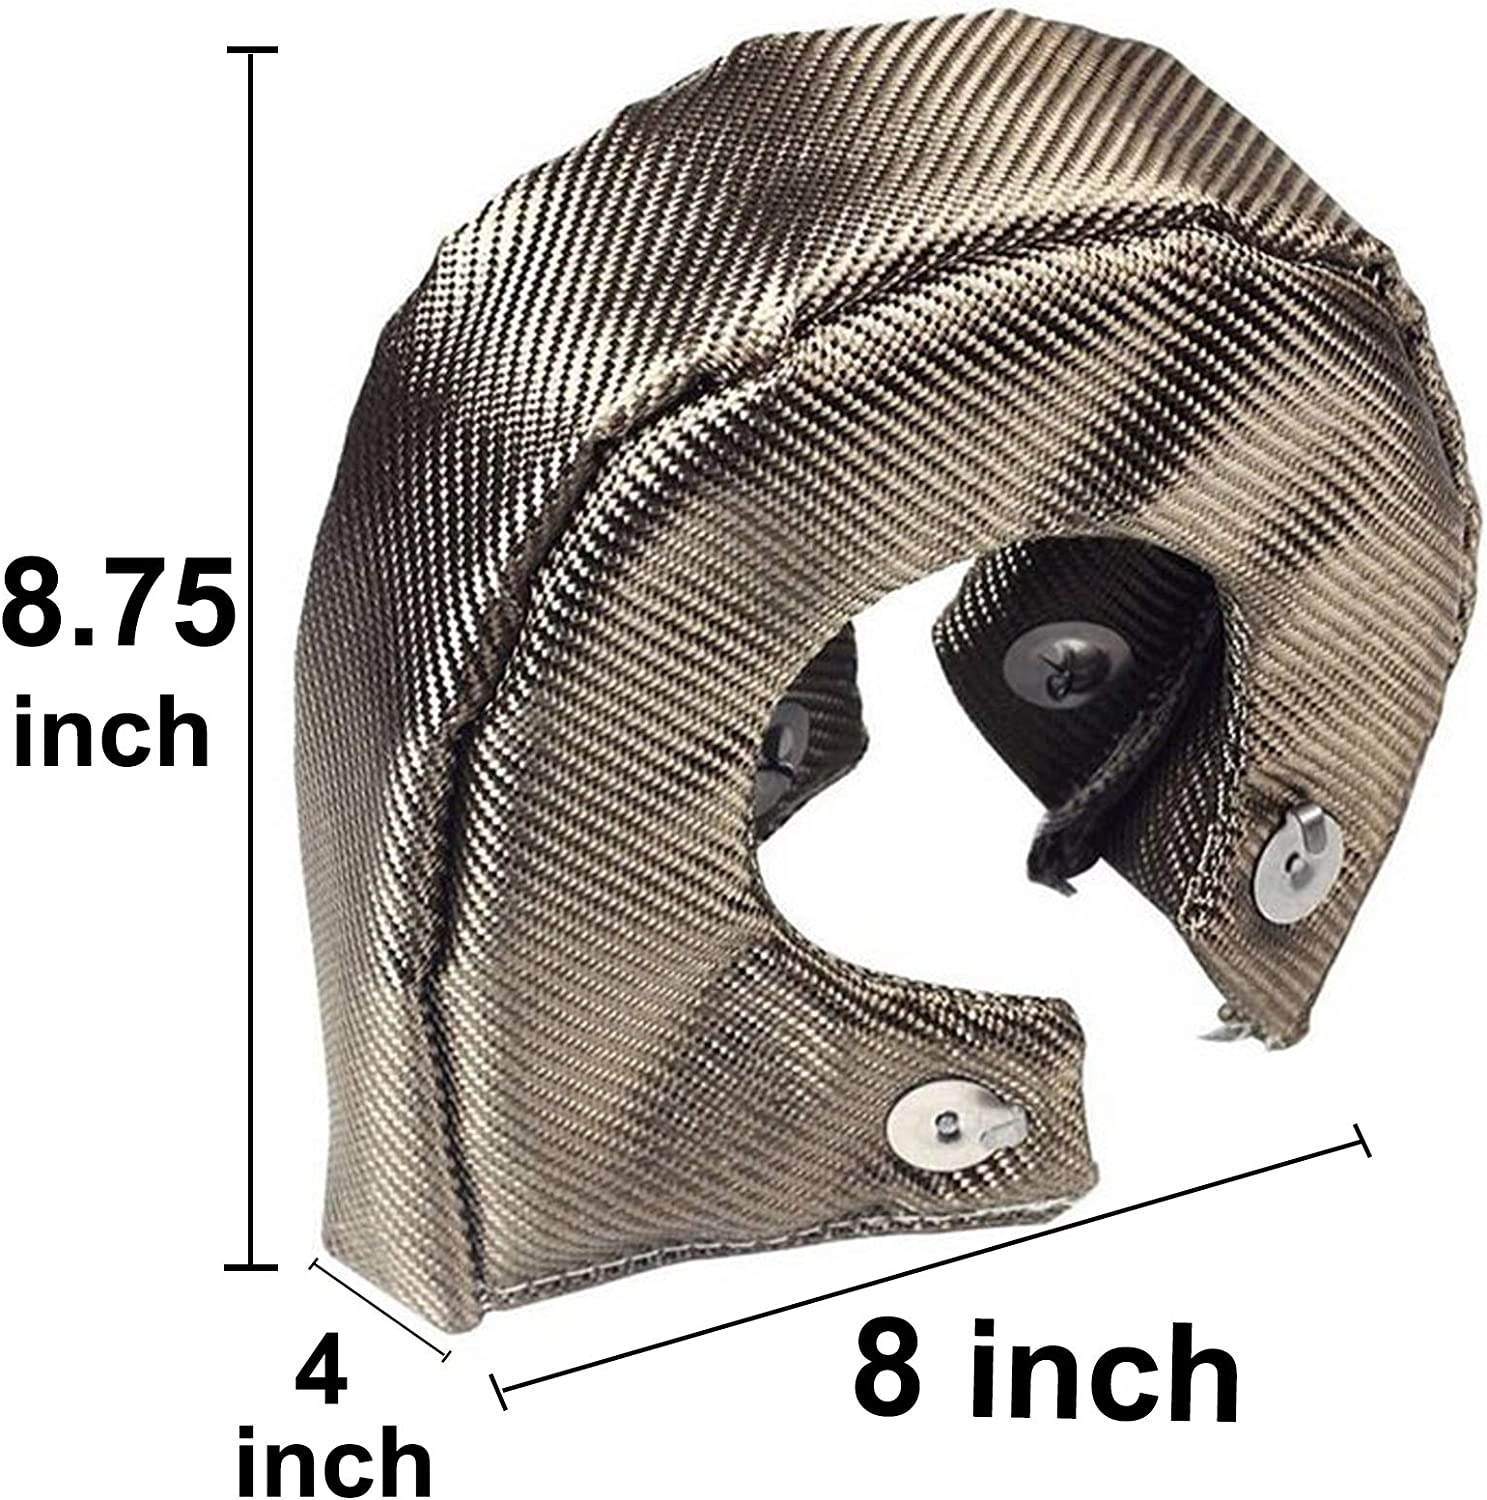 BLACKHORSE-RACING Titanium Turbo Blanket T4 for Turbocharger Thermal Heat Shield Cover Wrap with Fastener Springs